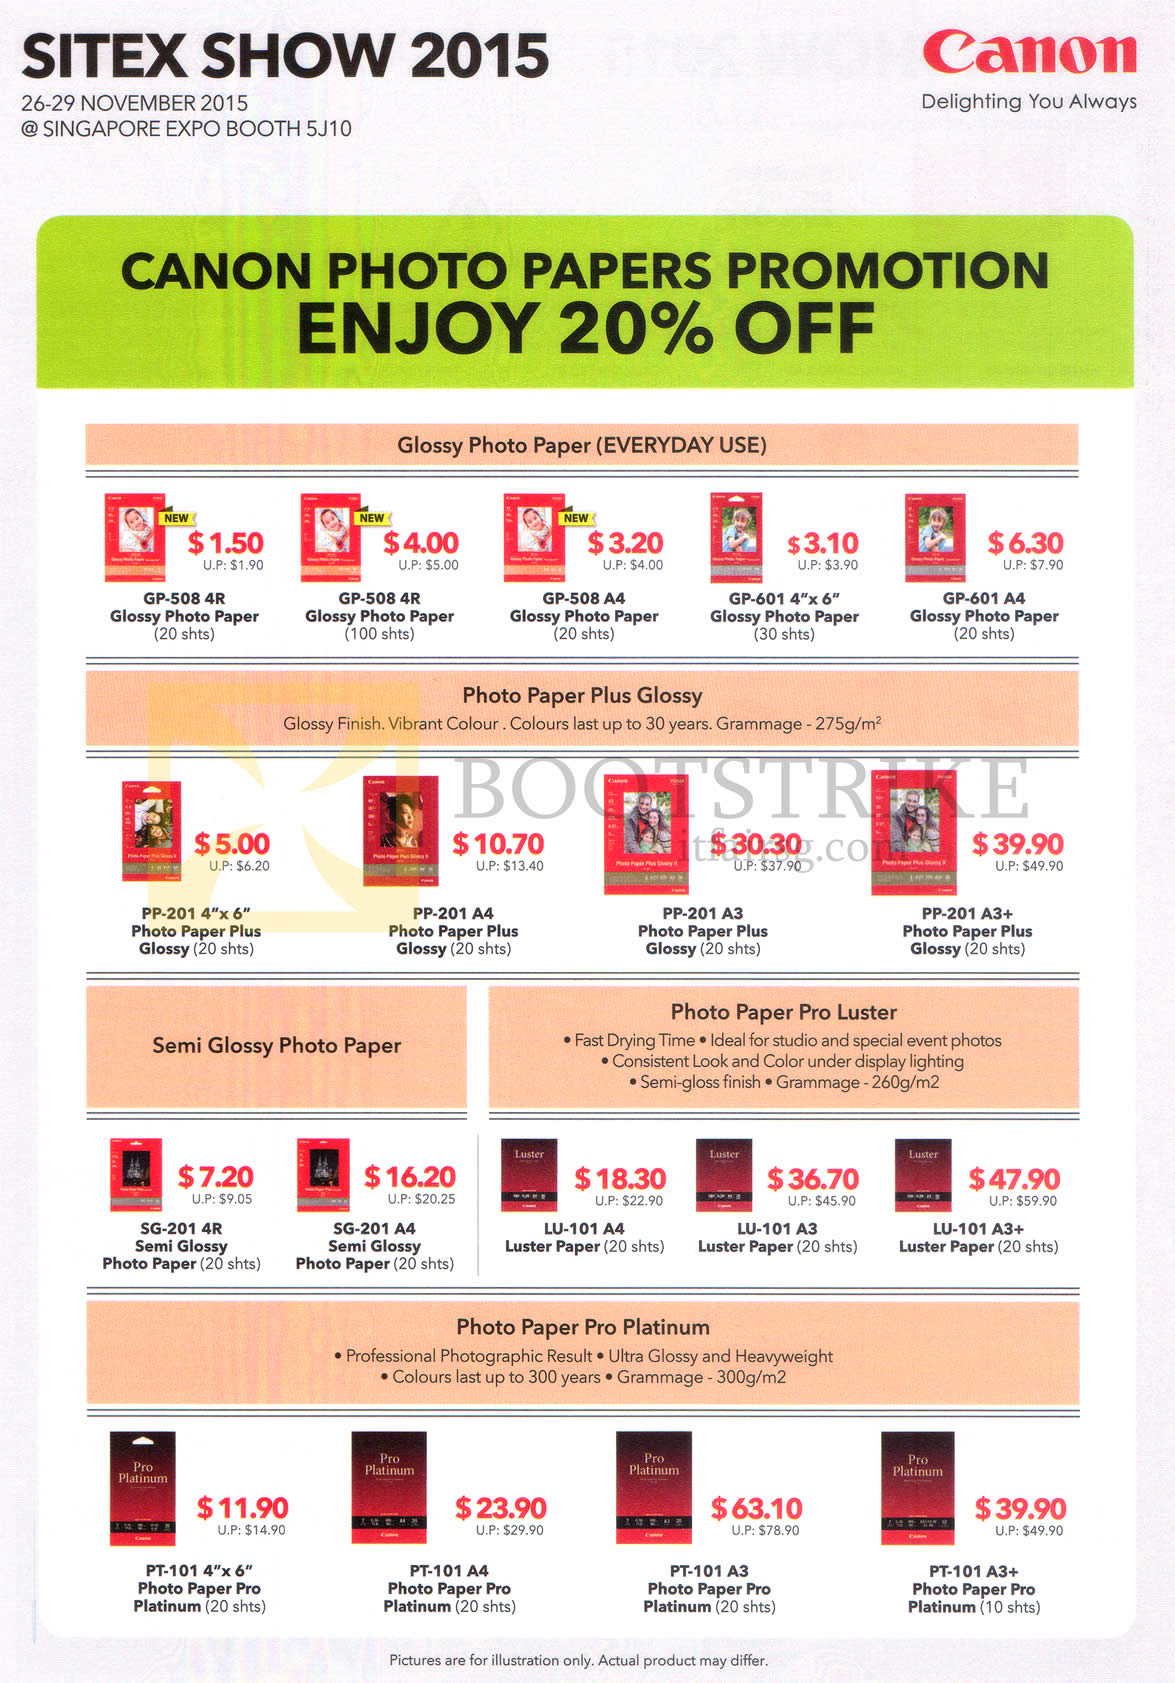 SITEX 2015 price list image brochure of Canon Photo Papers Promotion 20 Percent Off, Glossy, Semi Glossy Photo Paper, Photo Paper Pro Luster, Pro Platinum